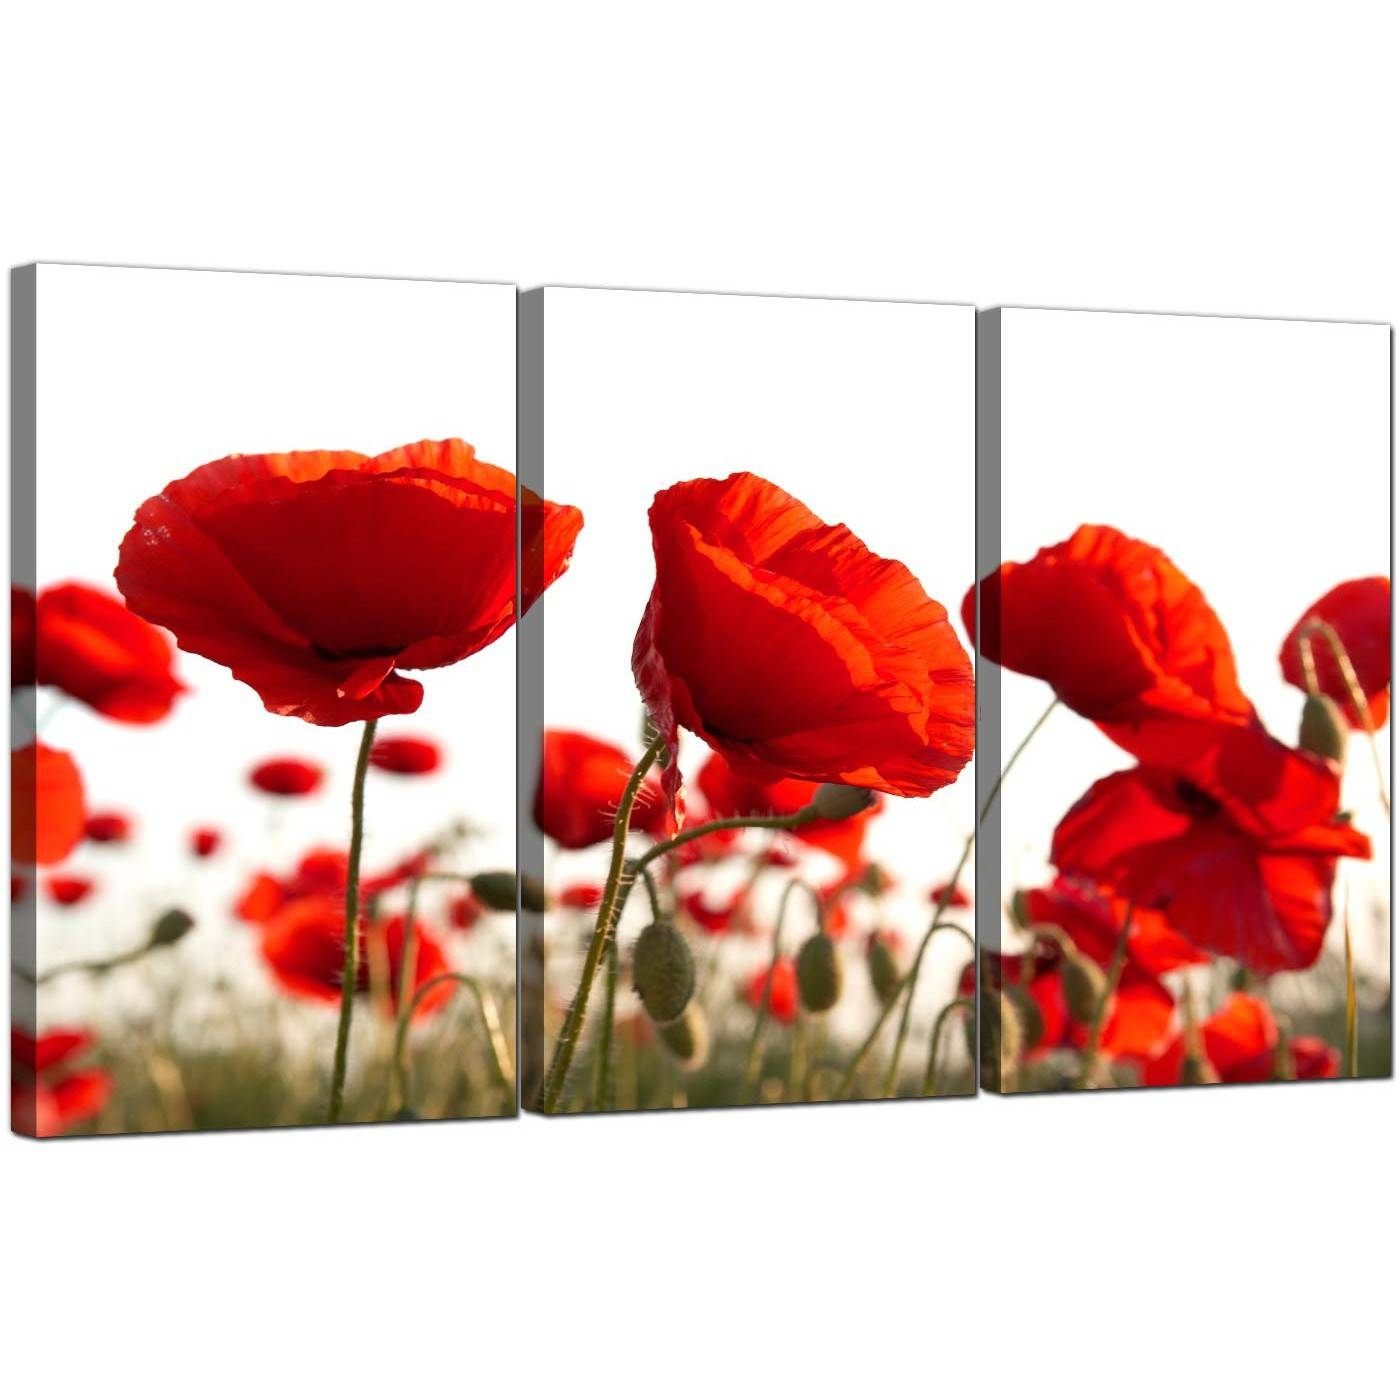 Poppy Canvas Wall Art Set Of 3 For Your Living Room Intended For Most Up To Date Red Poppy Canvas Wall Art (Gallery 3 of 20)